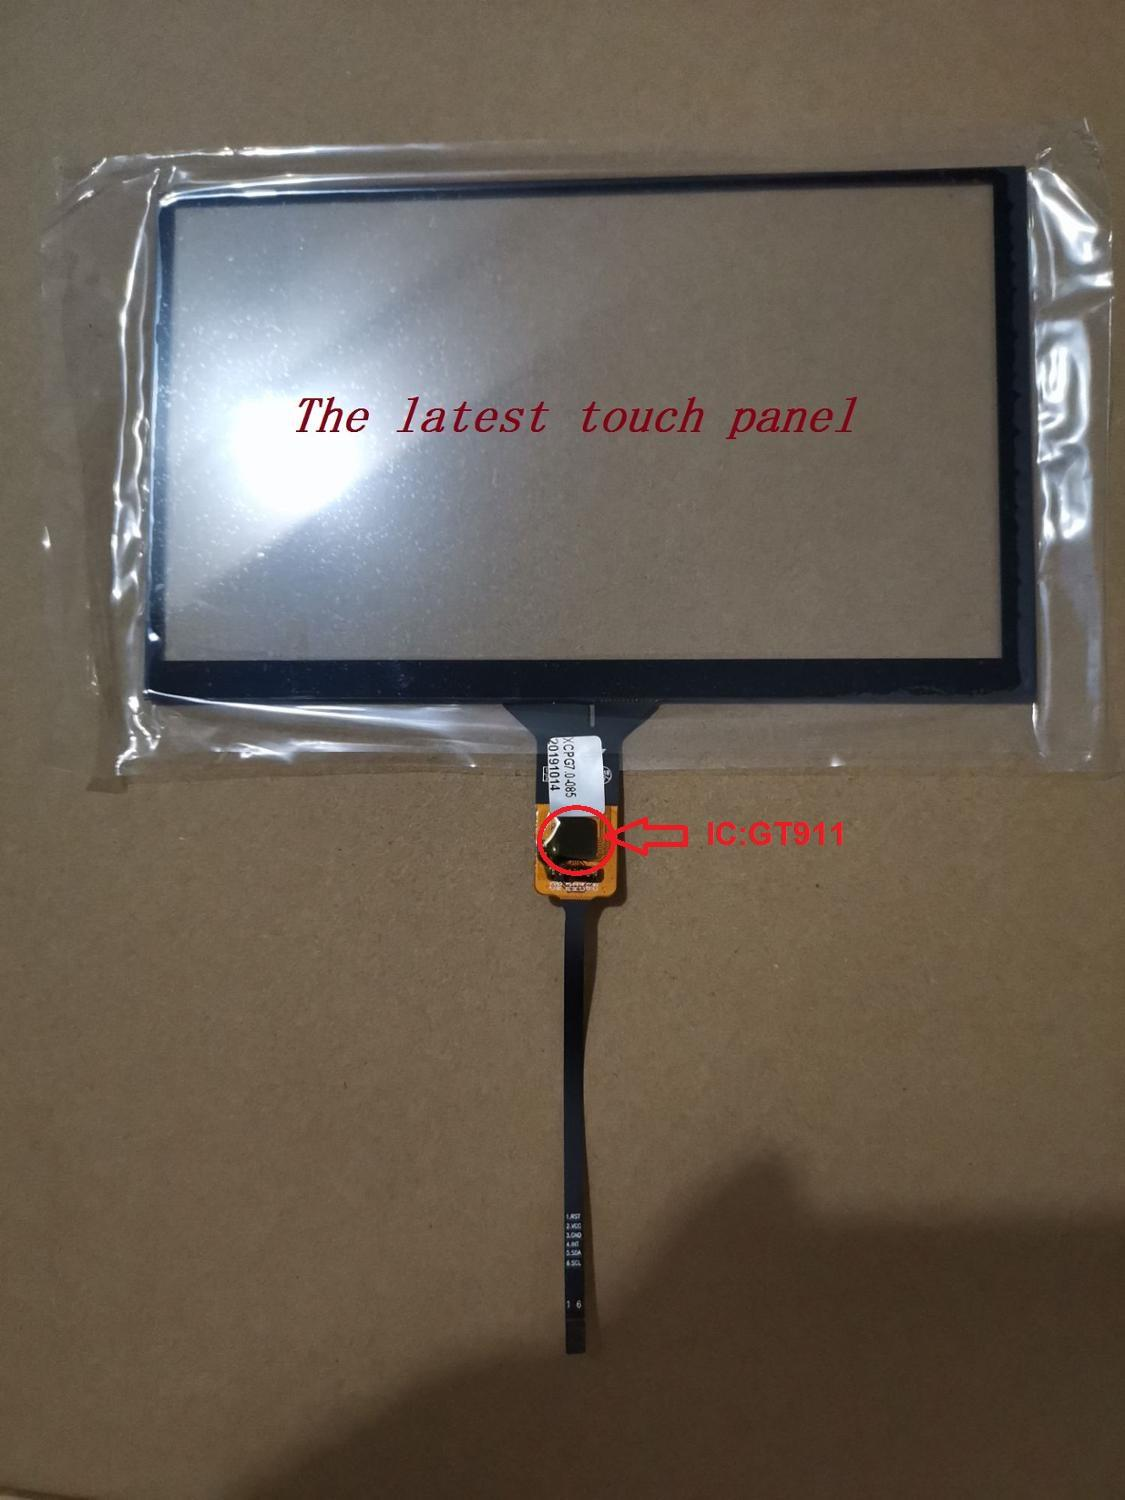 IC:GT911 7 Inch Capacitive Touch Screen For Car DVD Navigation 164mm*99mm 6pin Universal Touch Screen